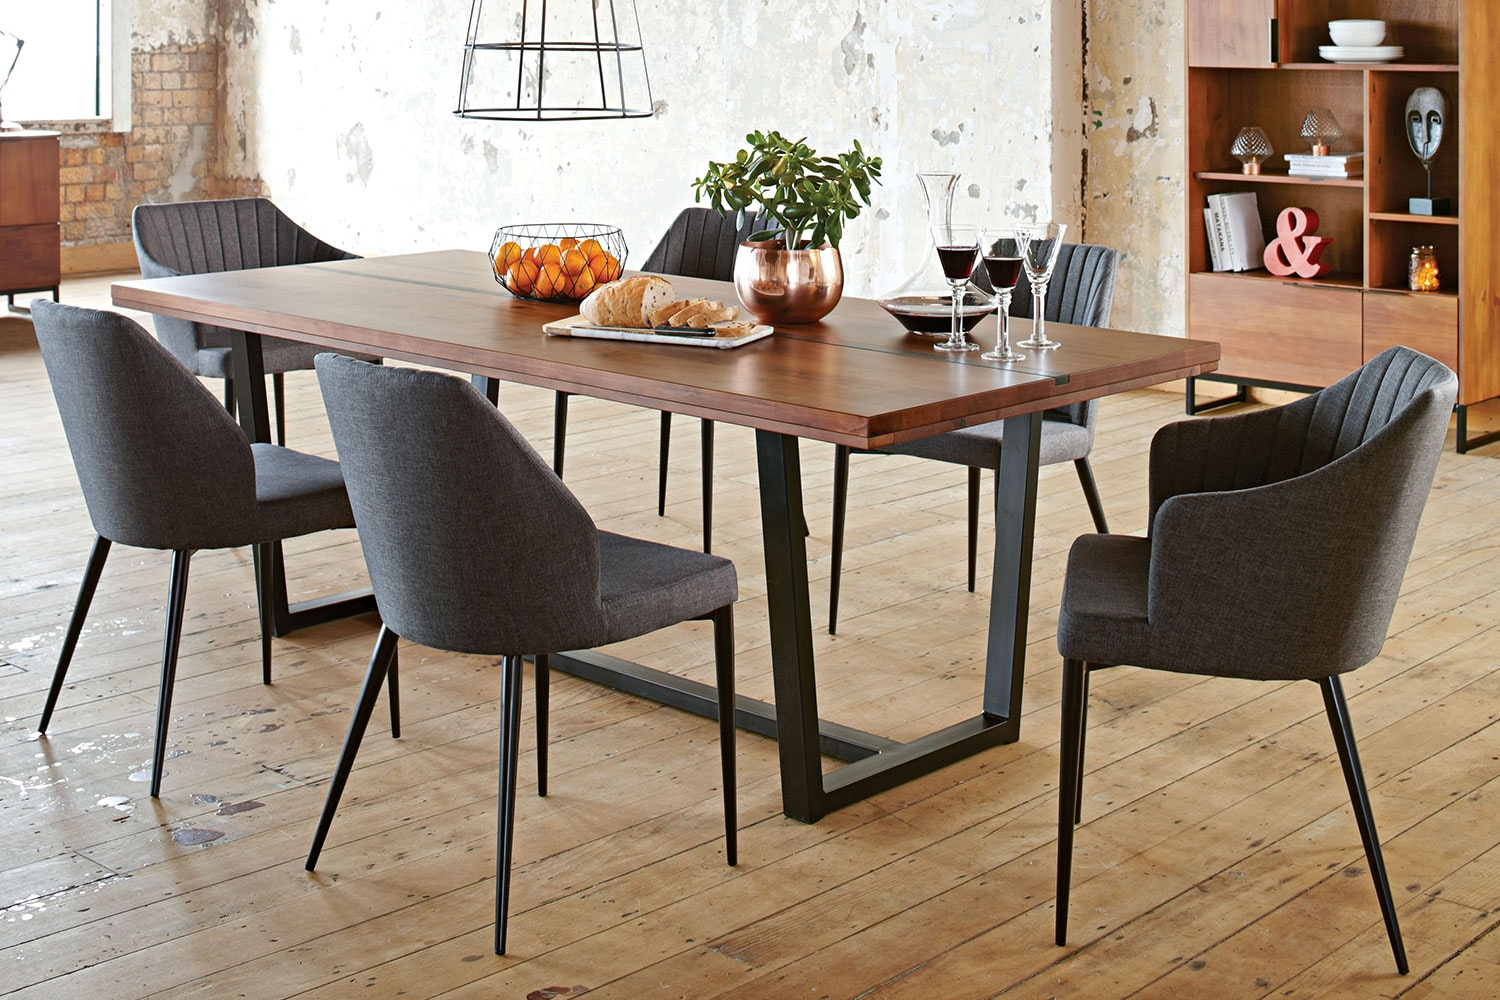 Matai Bay Dining Table by Sorensen Furniture Harvey  : matai bay dining table from www.harveynorman.co.nz size 1500 x 1000 jpeg 213kB